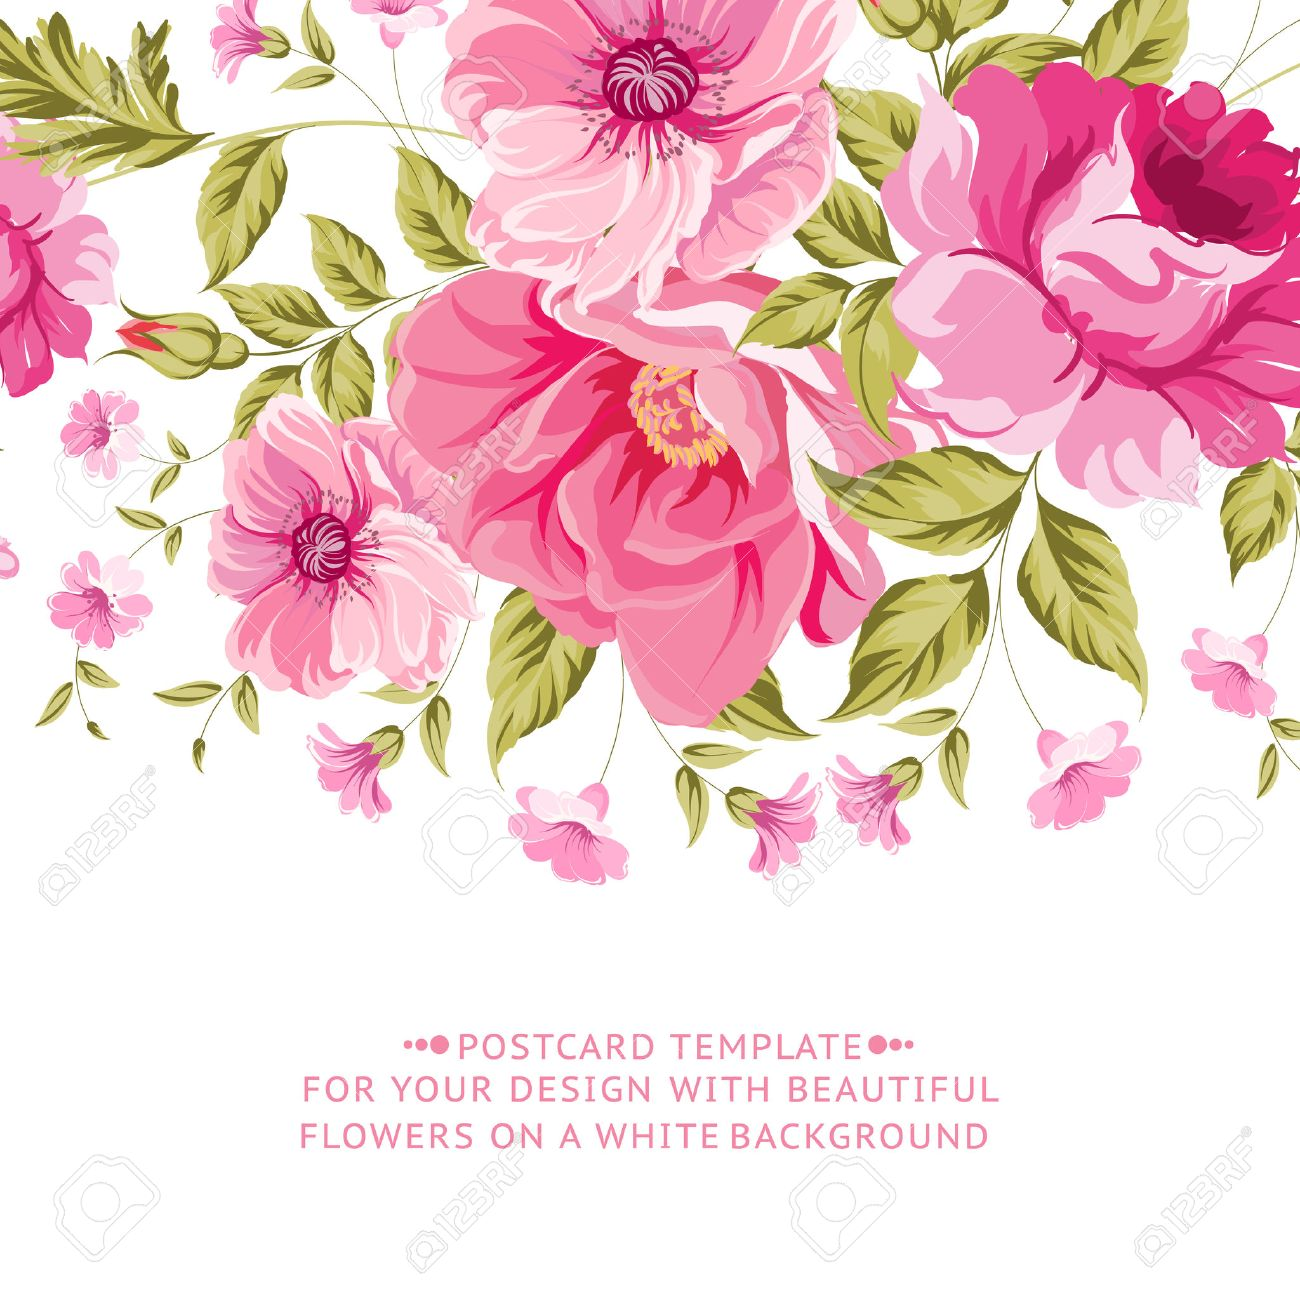 Ornate pink flower decoration with text label elegant vintage ornate pink flower decoration with text label elegant vintage greeting card design vector illustration mightylinksfo